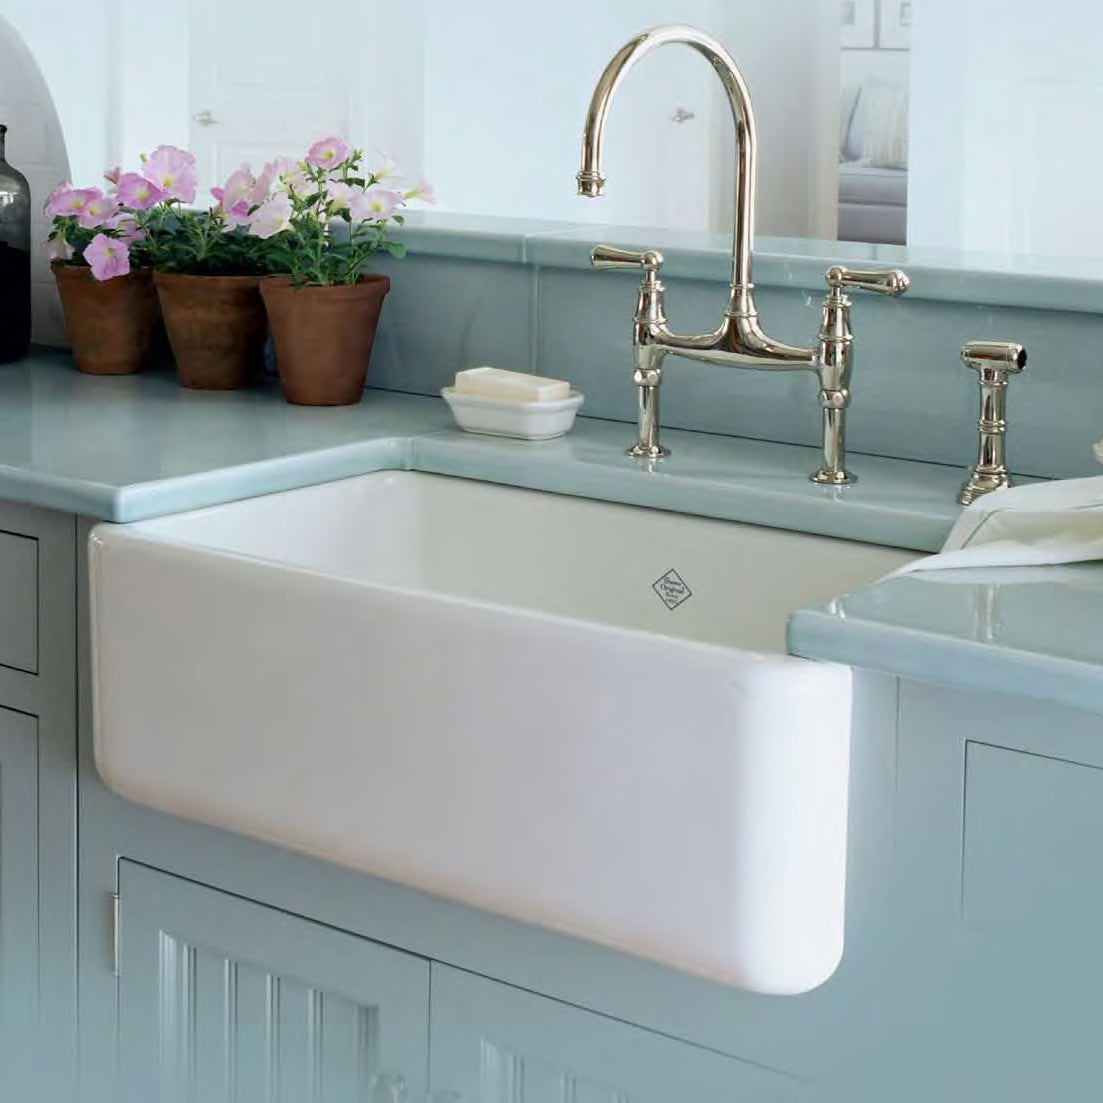 Rohl Shaws 30 Fireclay Thick Farmhouse Sink White Rc3018 The Sink Boutique